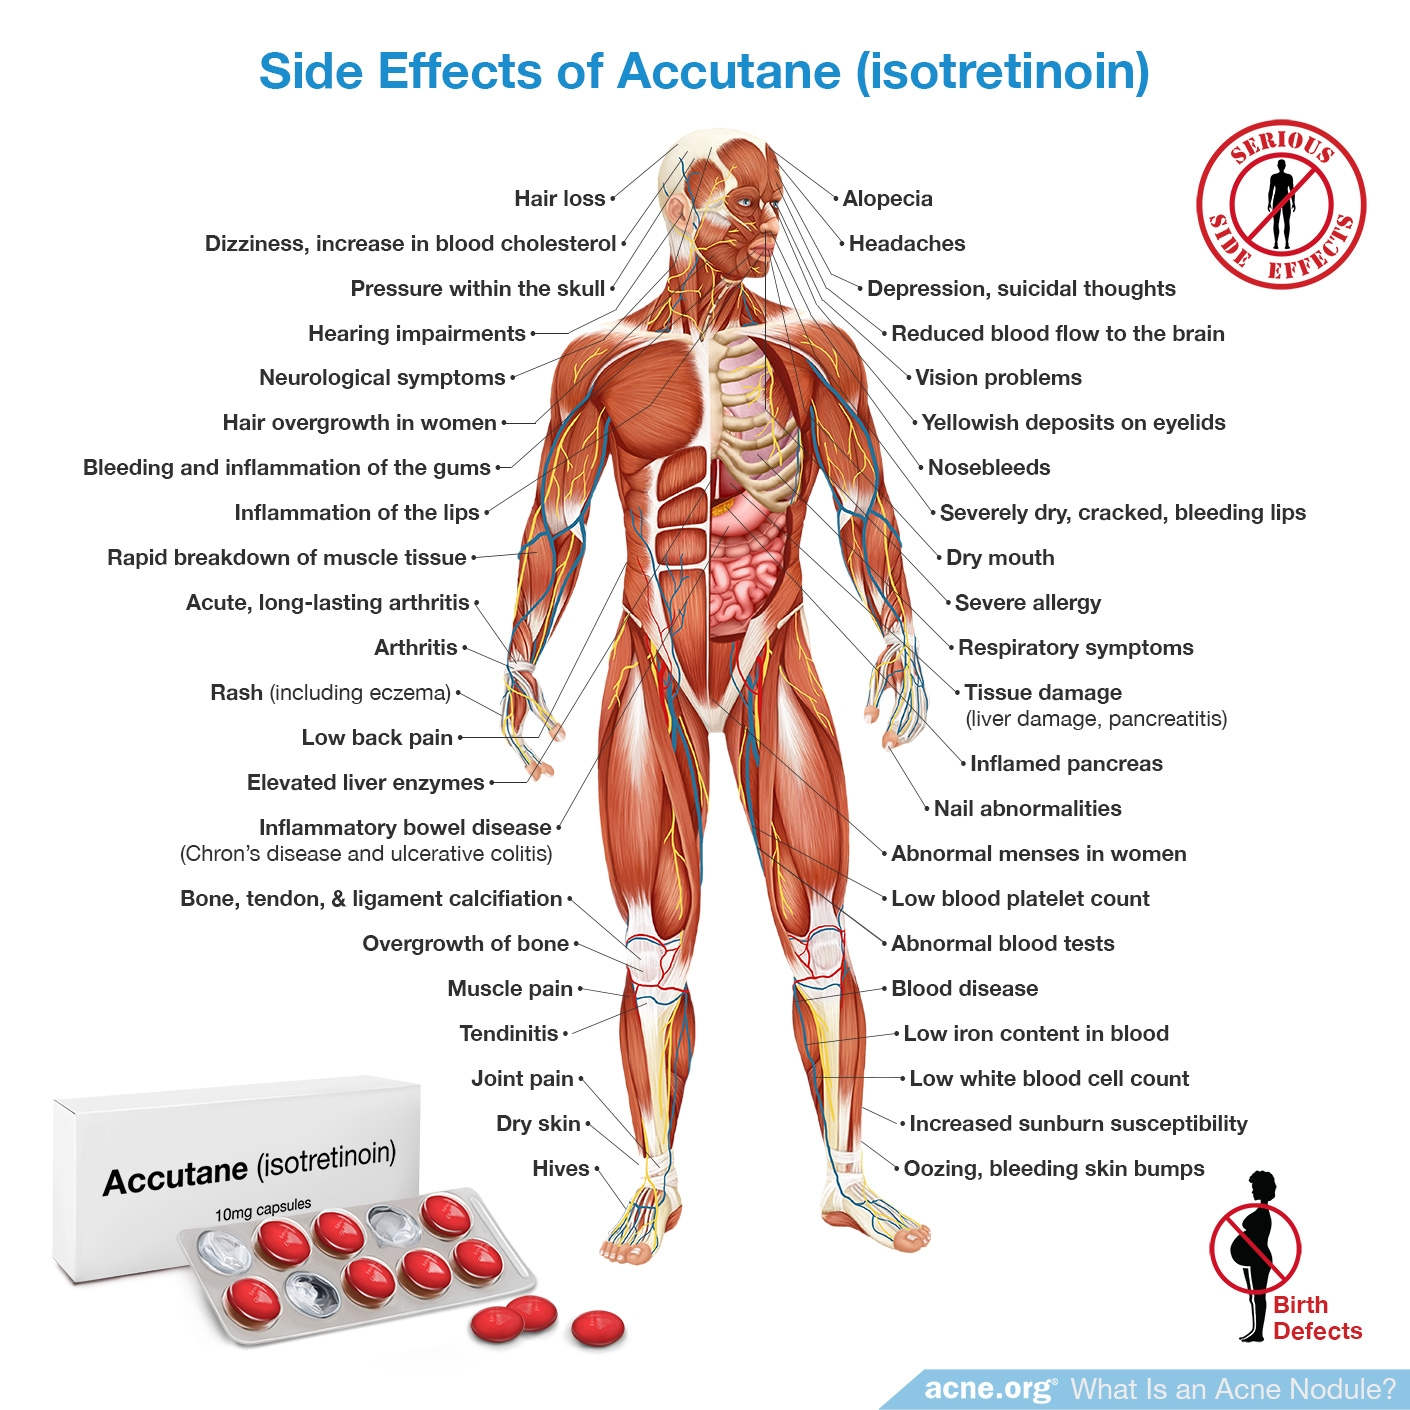 Side Effects of Accutane (isotretinoin) - Acne.org